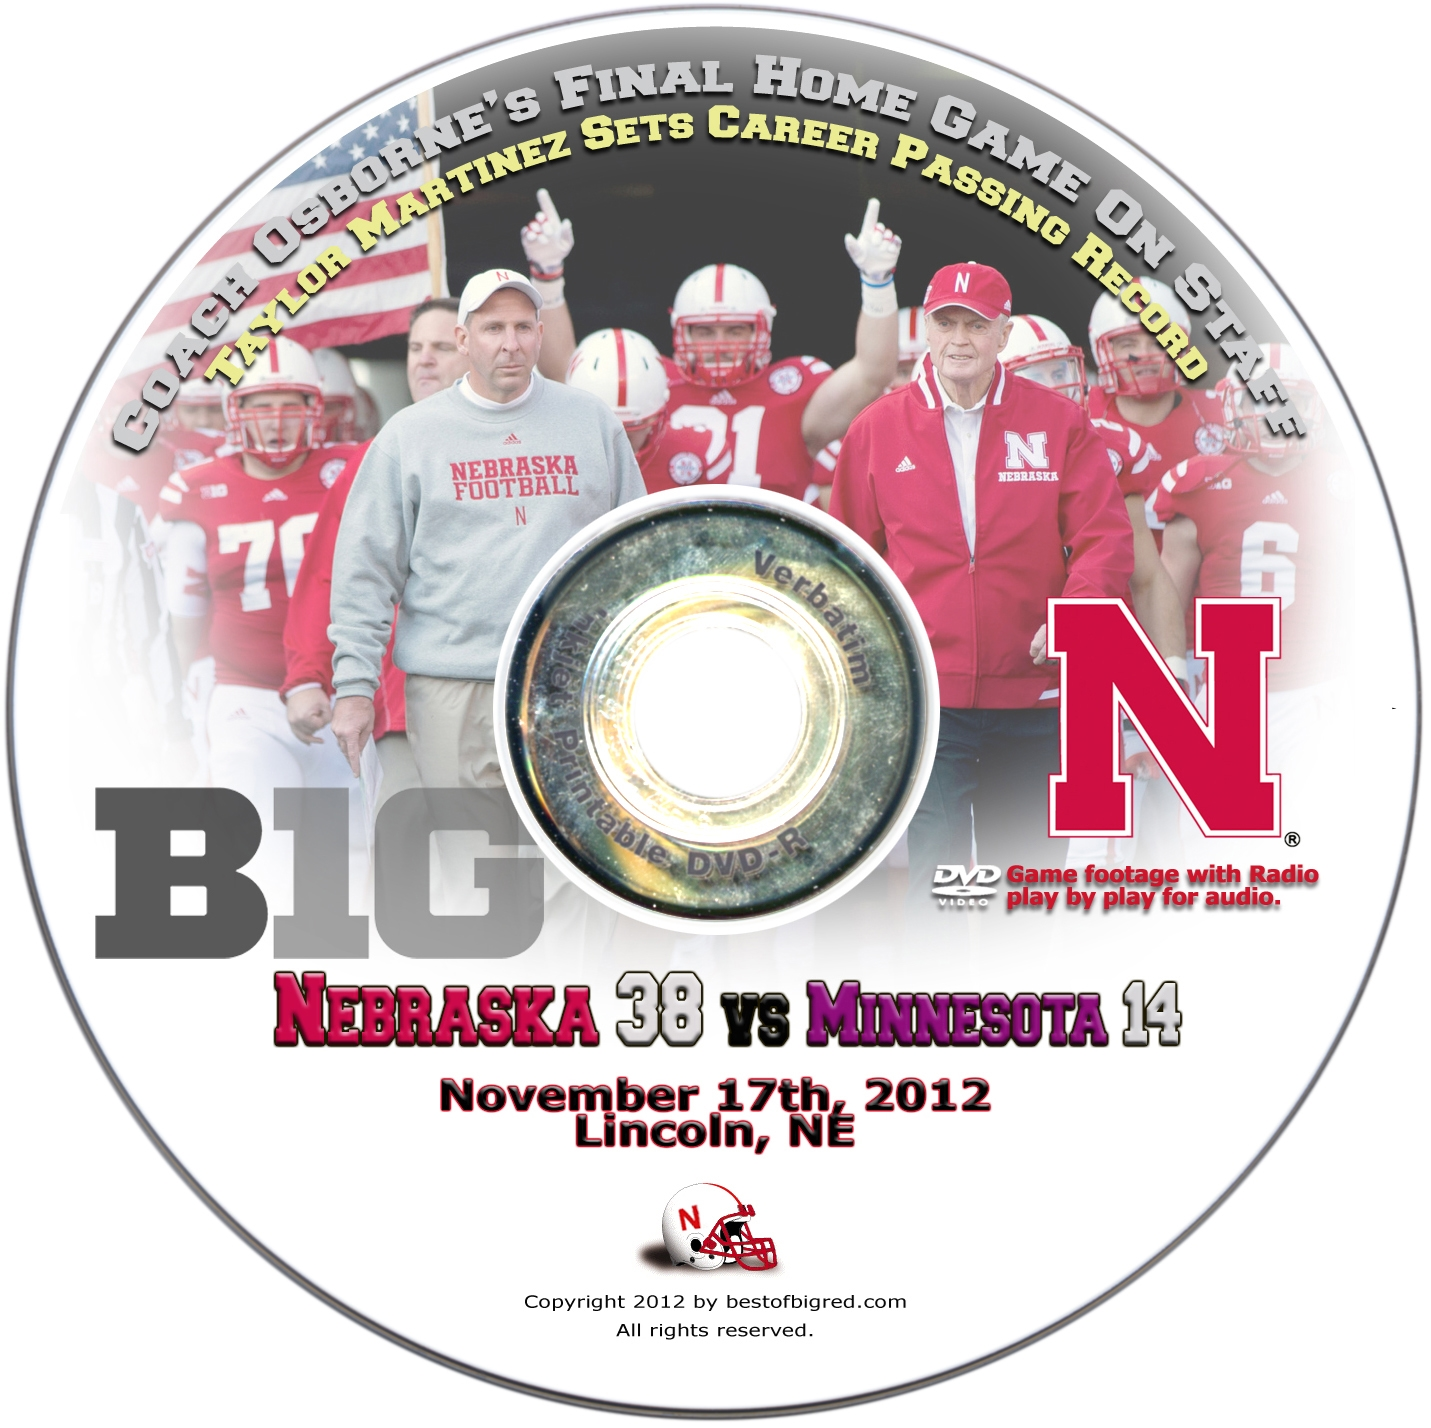 2012 Huskers vs. Minnesota Golden Gophers Husker football, Nebraska cornhuskers merchandise, husker merchandise, nebraska merchandise, nebraska cornhuskers dvd, husker dvd, nebraska football dvd, nebraska cornhuskers videos, husker videos, nebraska football videos, husker game dvd, husker bowl game dvd, husker dvd subscription, nebraska cornhusker dvd subscription, husker football season on dvd, nebraska cornhuskers dvd box sets, husker dvd box sets, Nebraska Cornhuskers, 2012 Minnesota